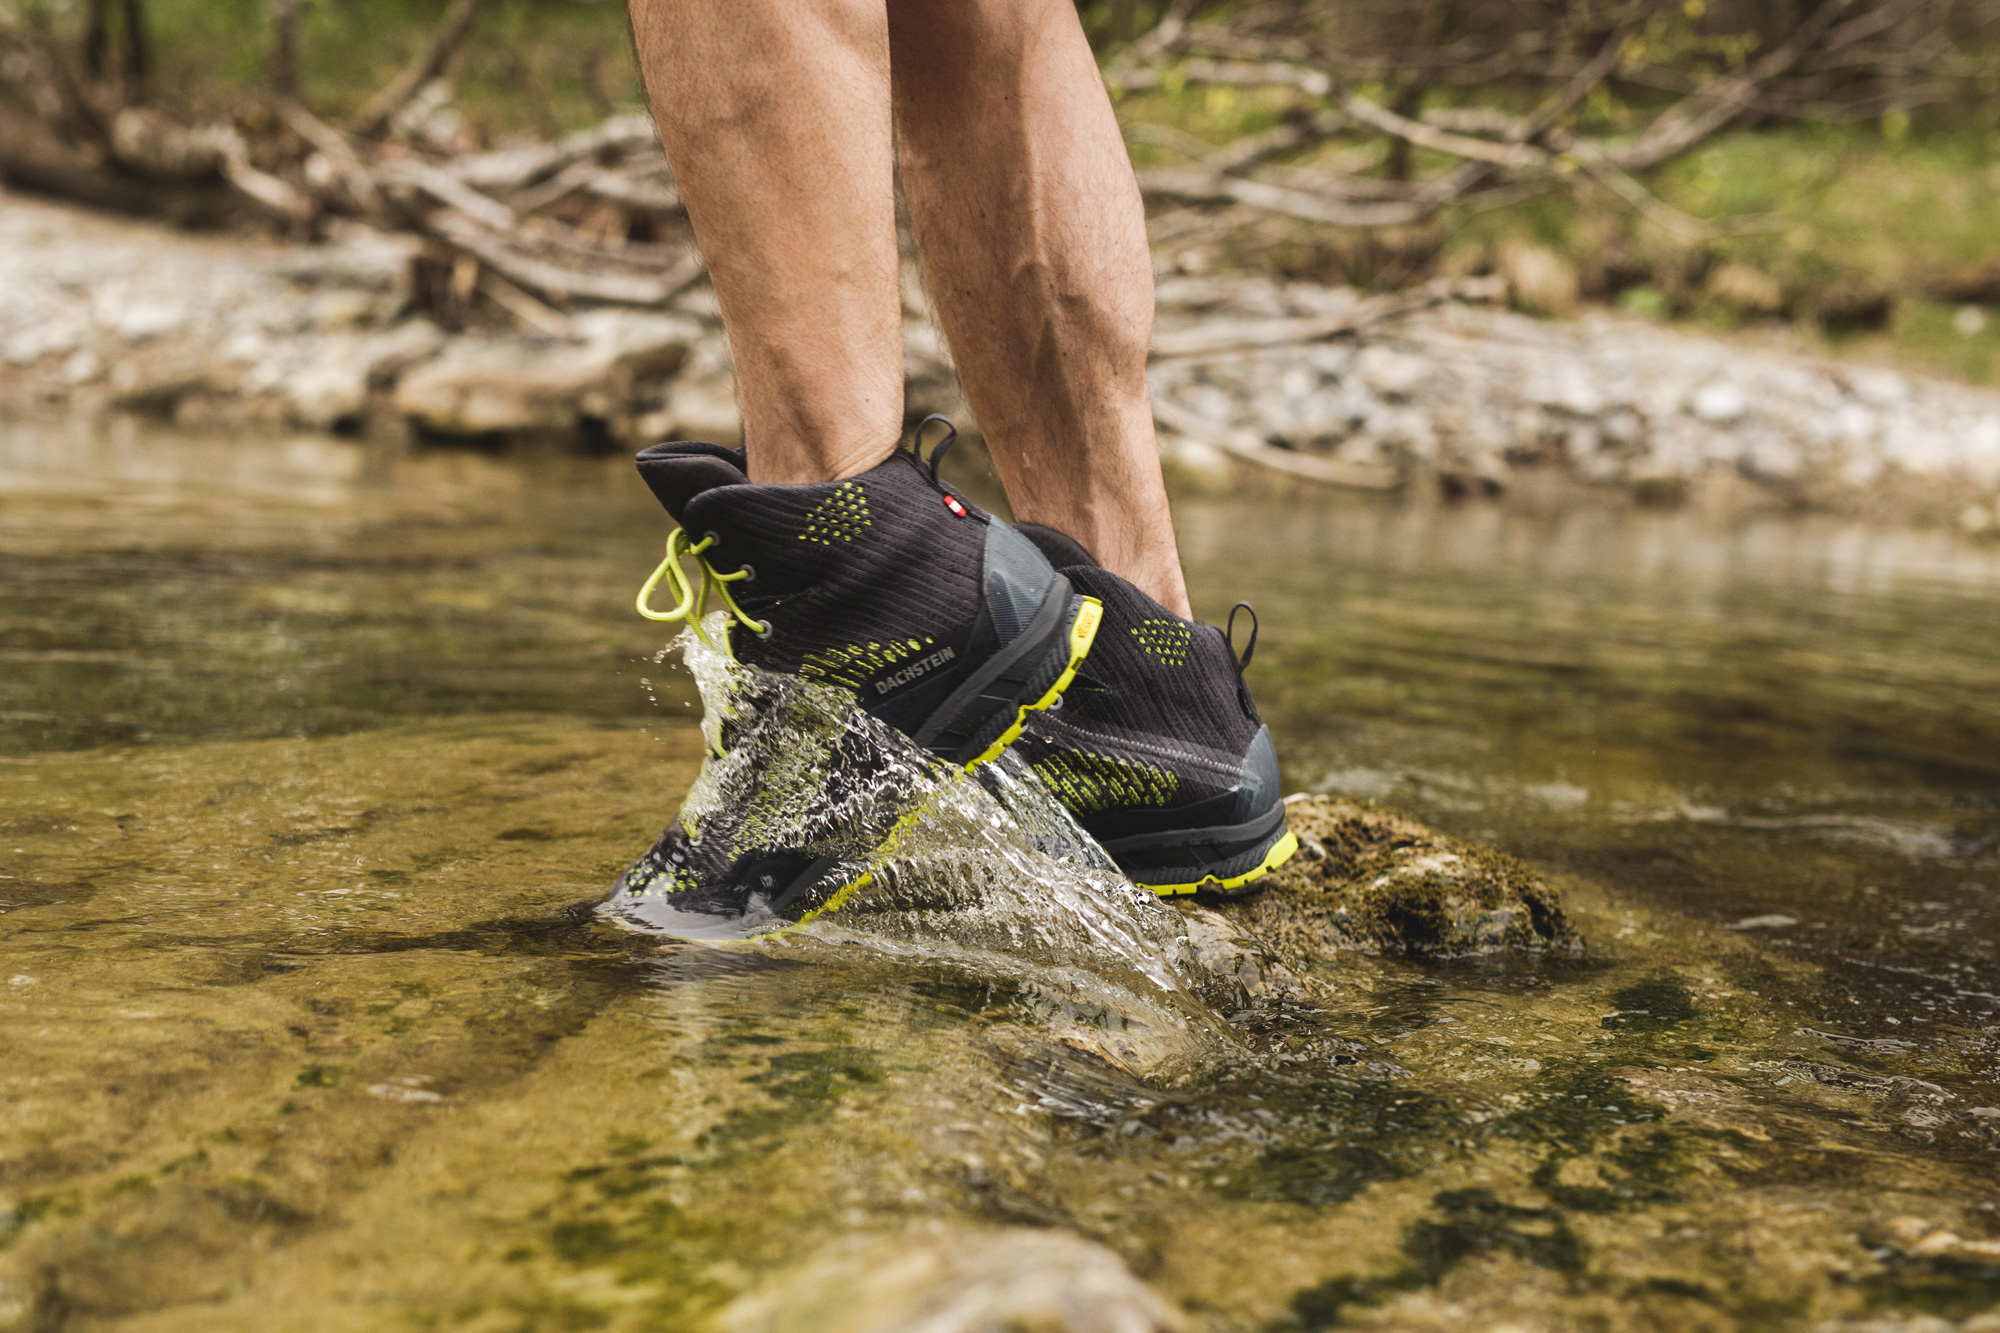 Water proof mountaineering boots